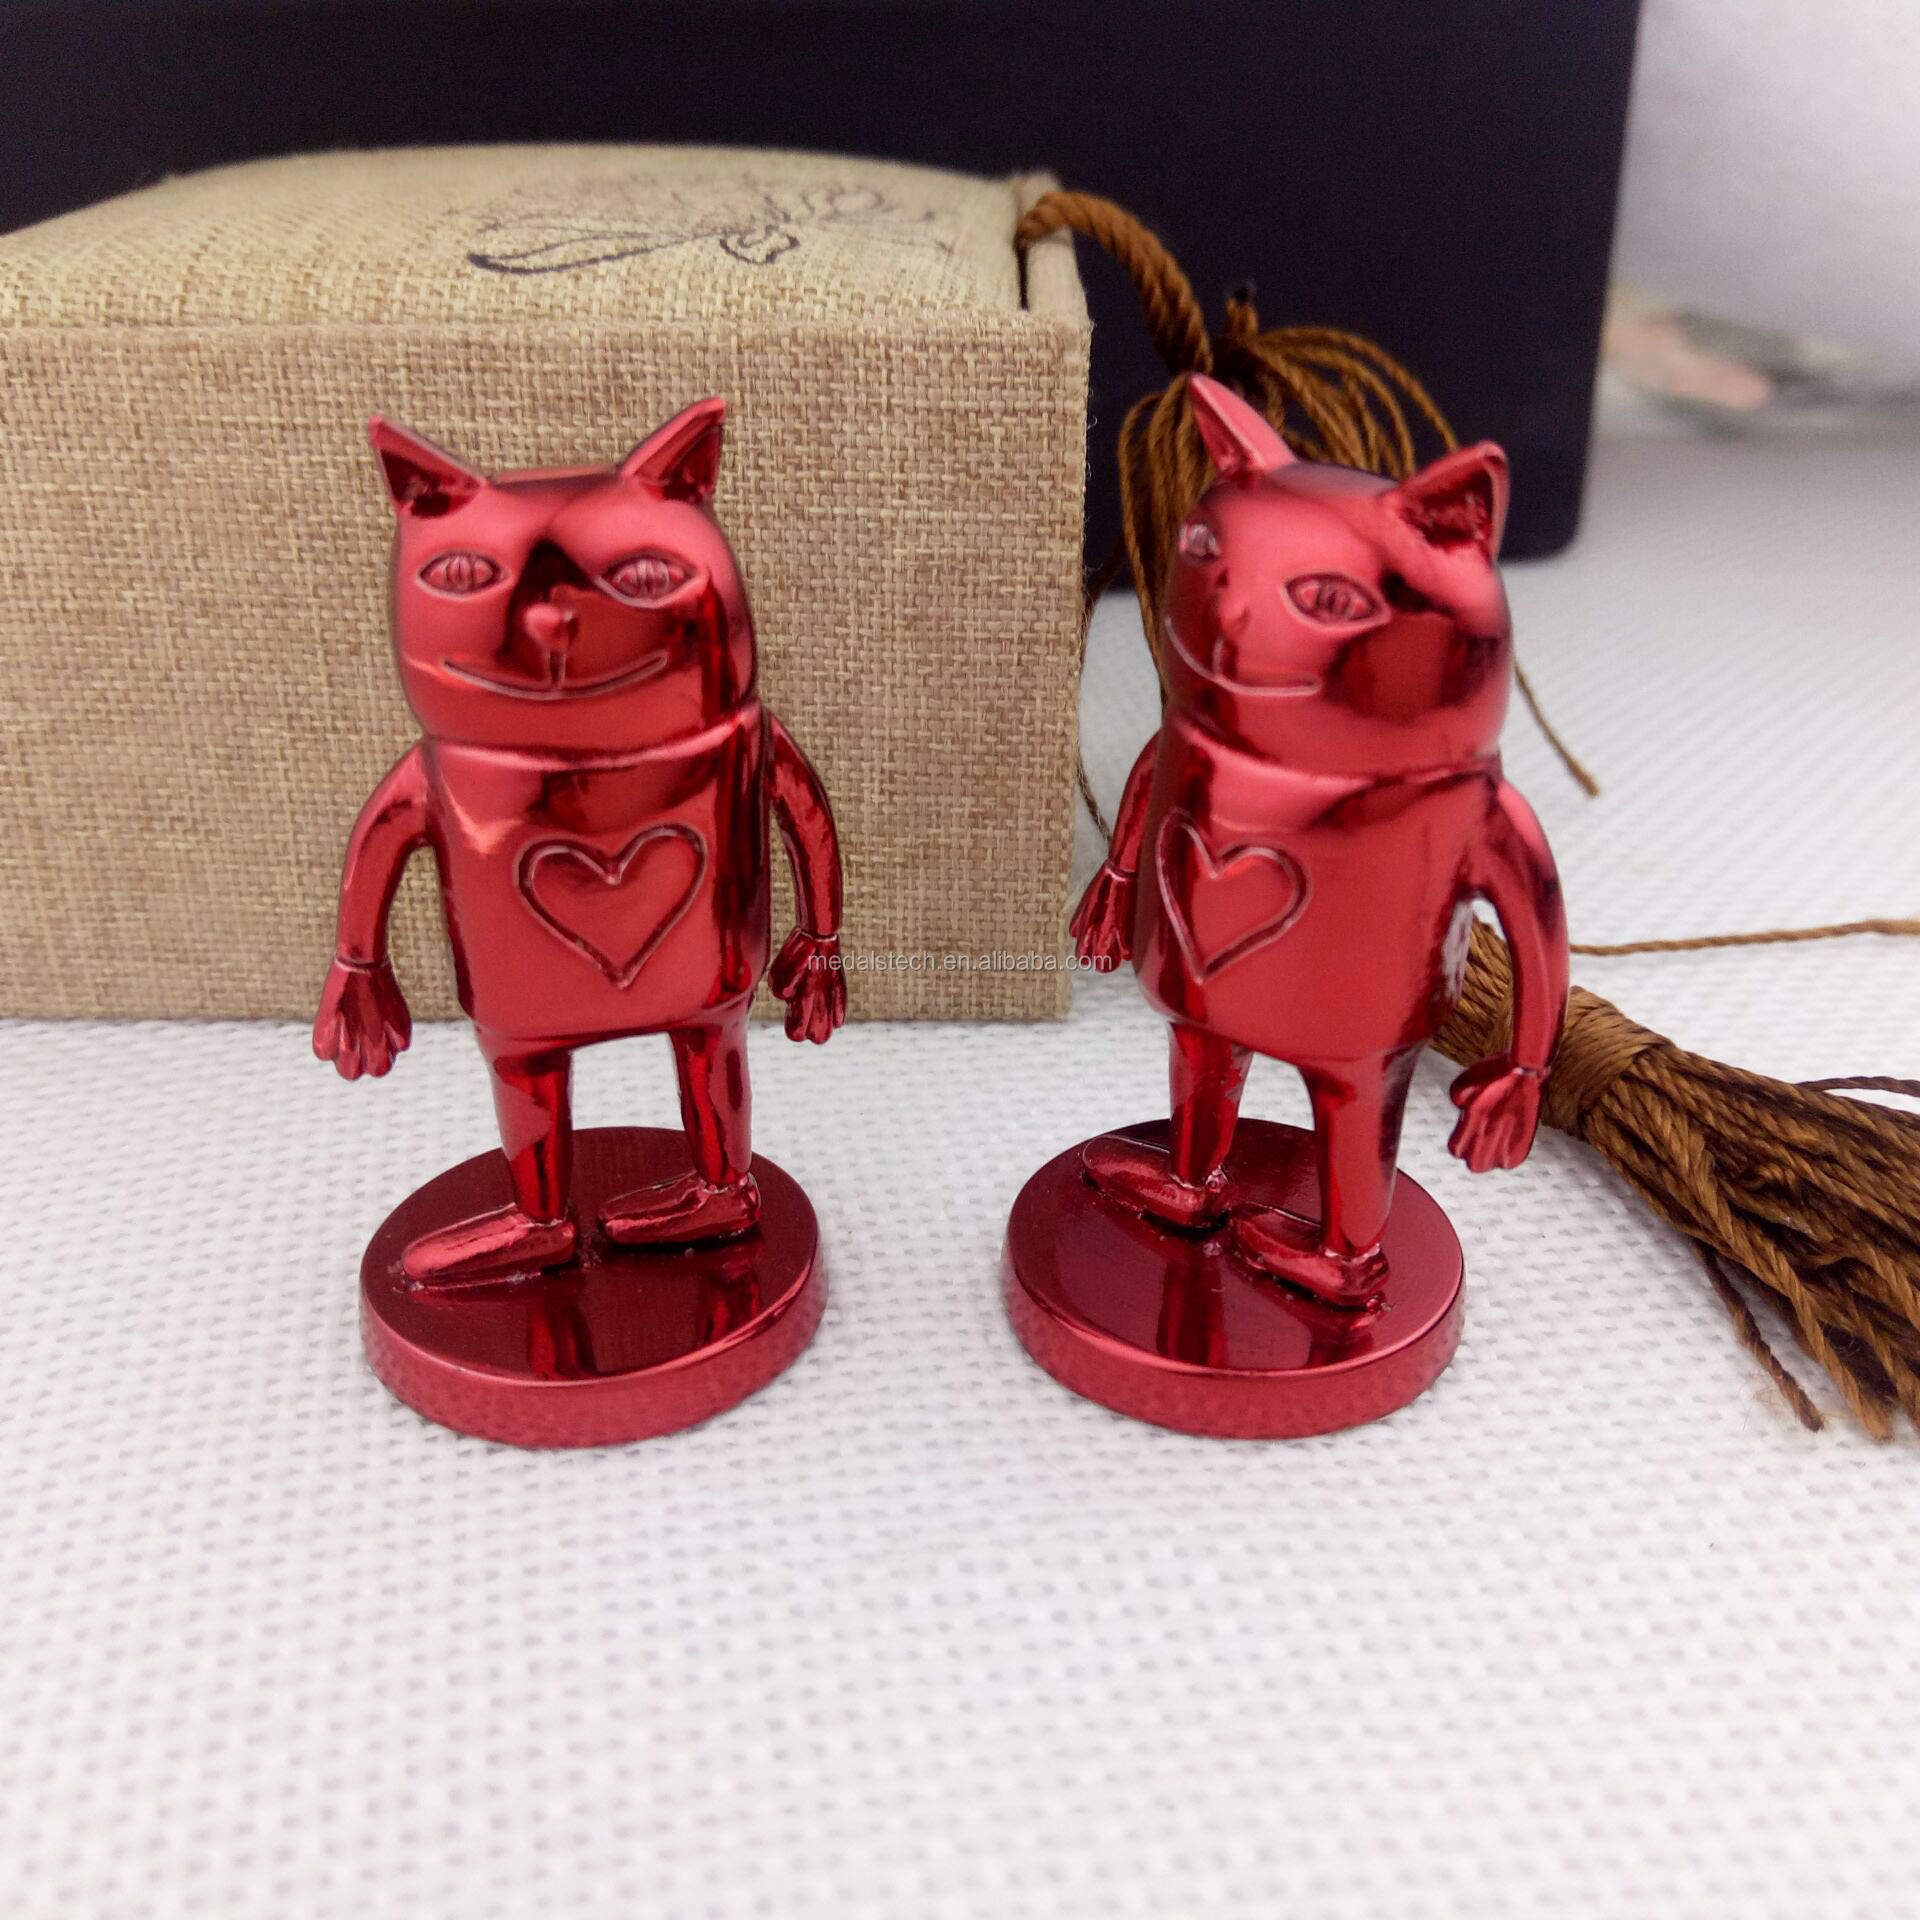 Custom high quality color plating 3d metal miniature figures for games and movies character